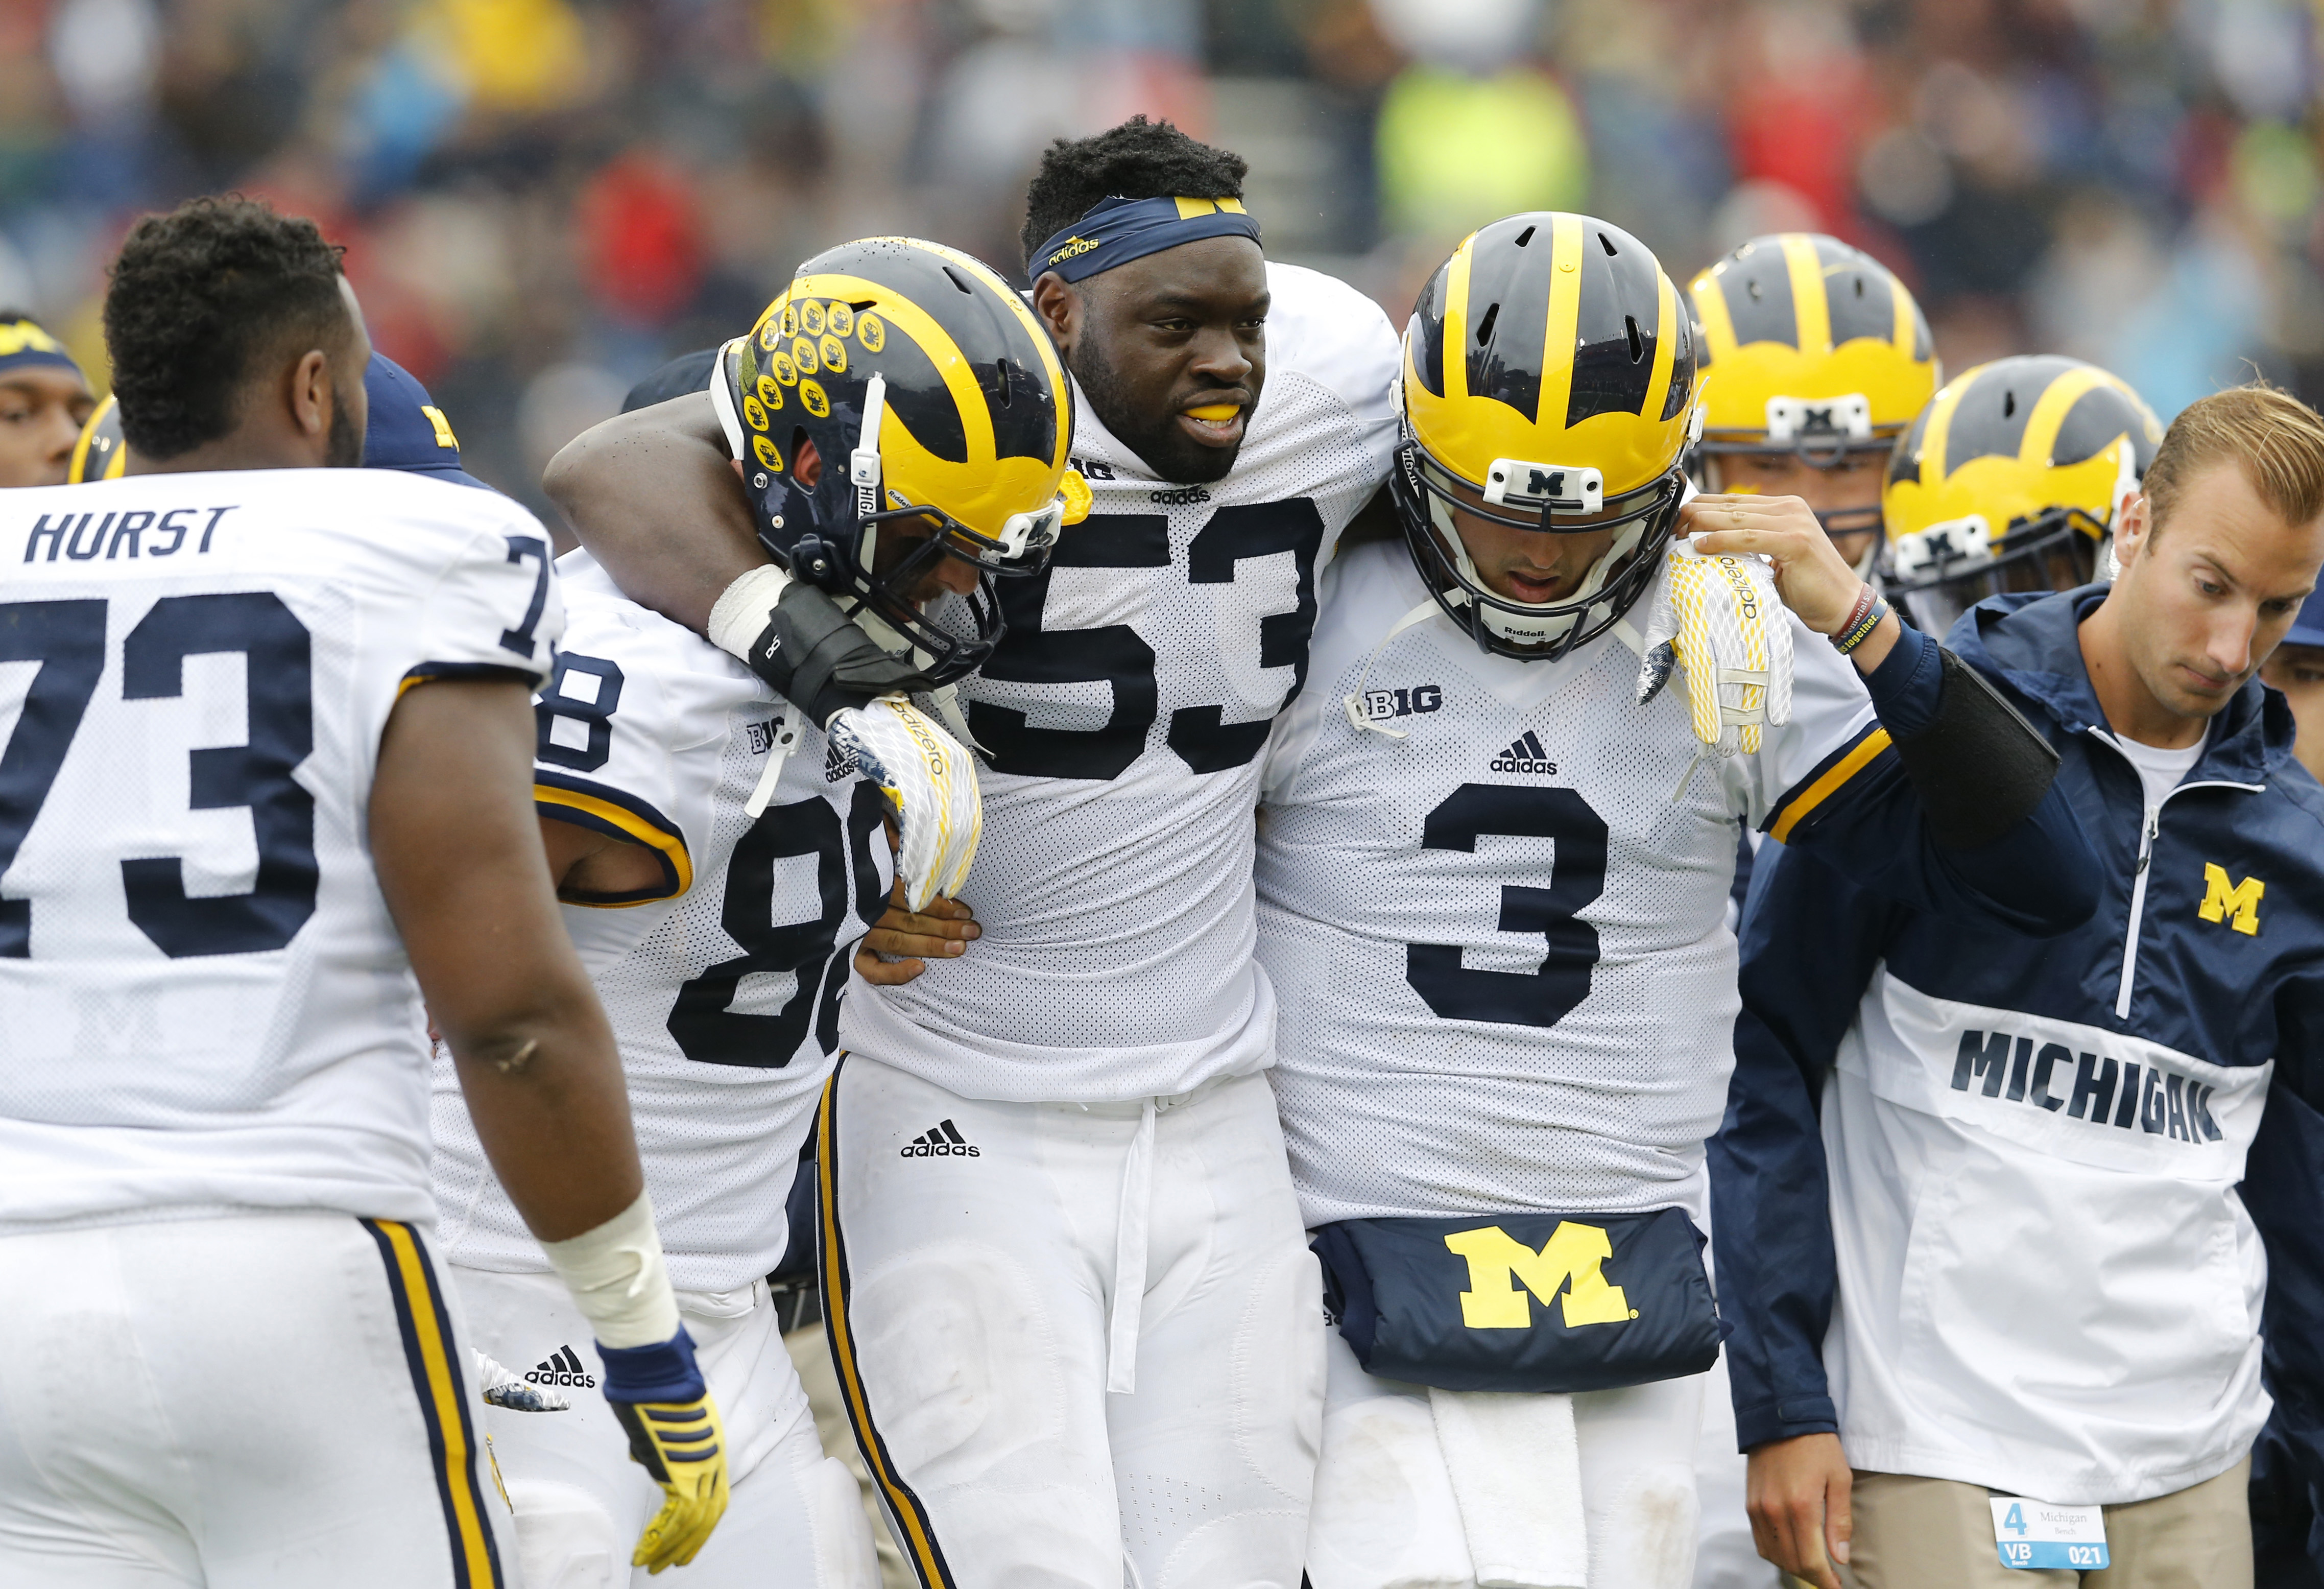 Michigan defensive end Mario Ojemudia (53) is assisted off the field after injuring himself on a play in the second half of an NCAA college football game against Maryland, Saturday, Oct. 3, 2015, in College Park, Md. (AP Photo/Patrick Semansky)